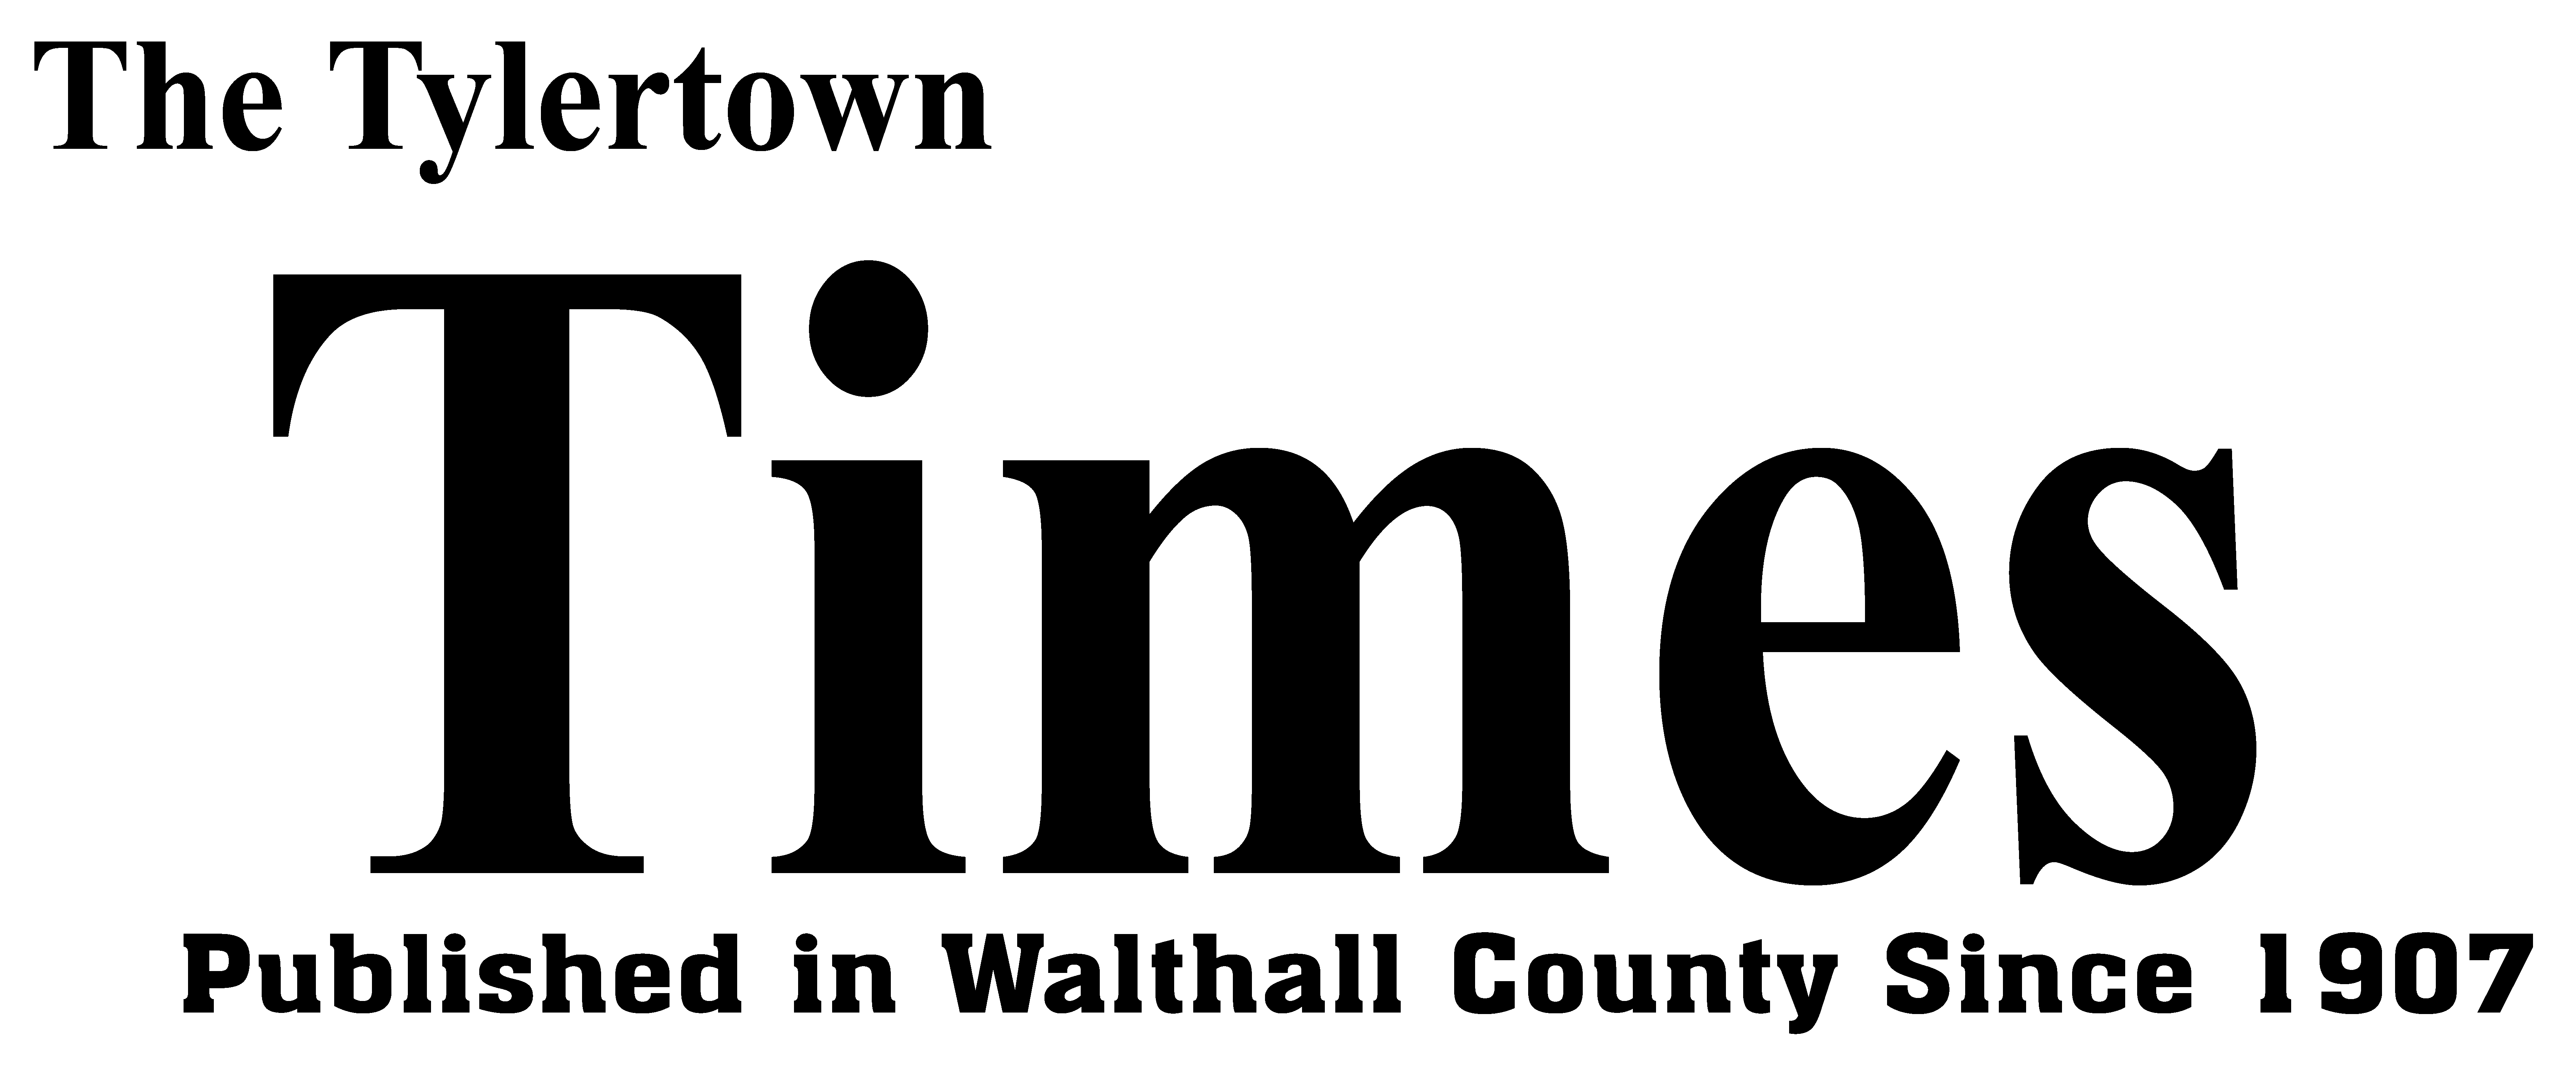 The Tylertown Times